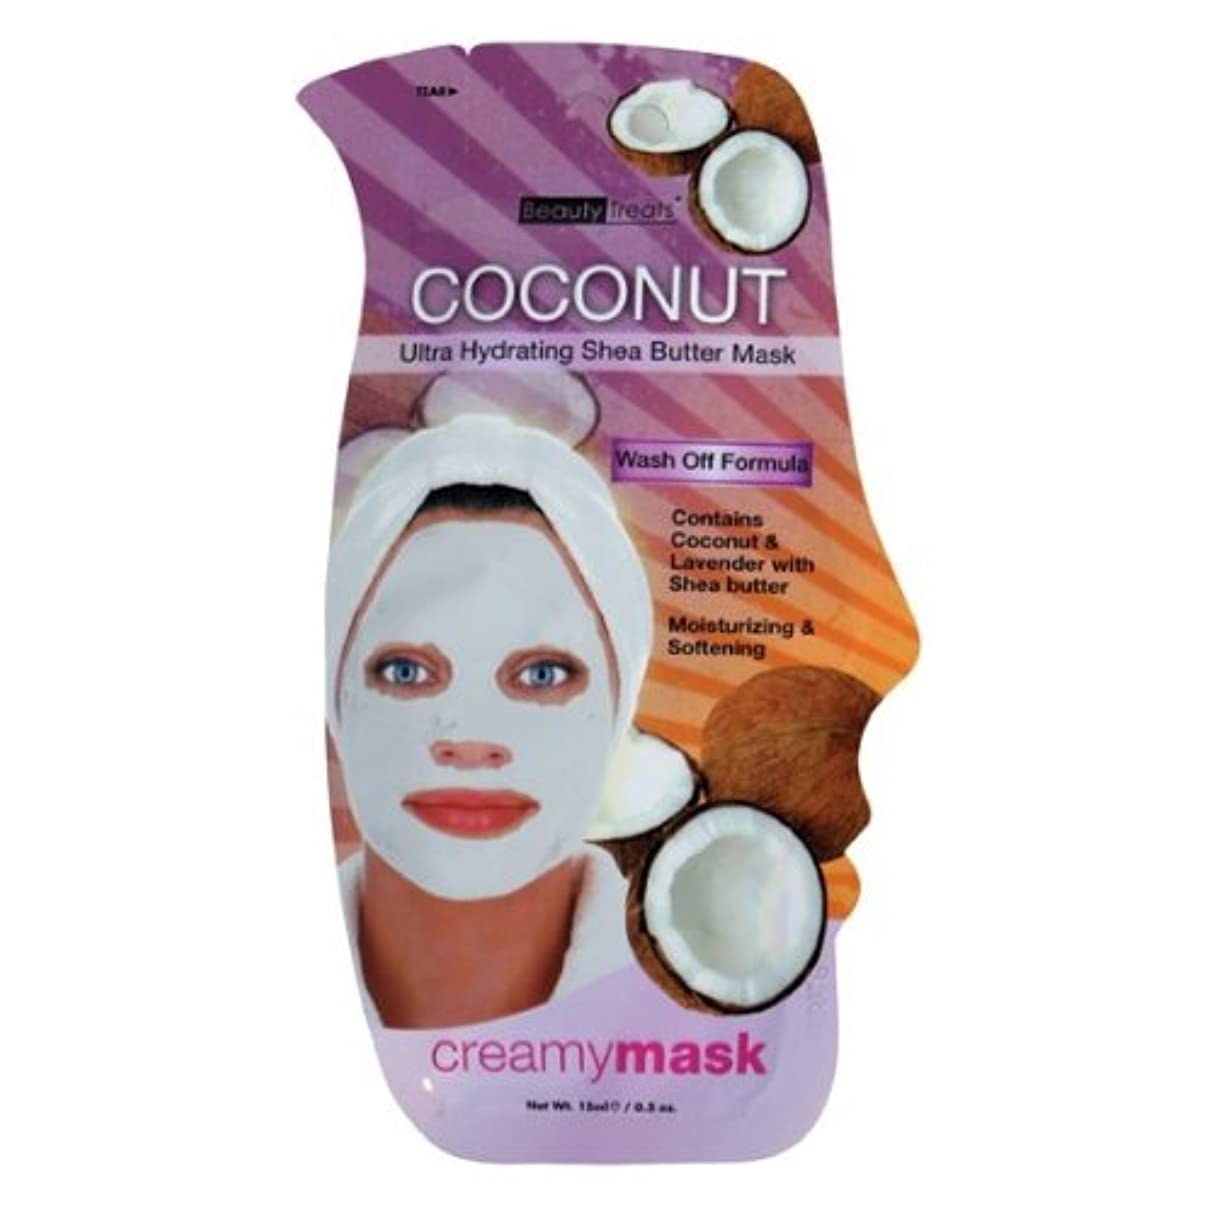 私の文房具ビデオ(3 Pack) BEAUTY TREATS Coconut Ultra Hydrating Shea Butter Mask - Coconut (並行輸入品)